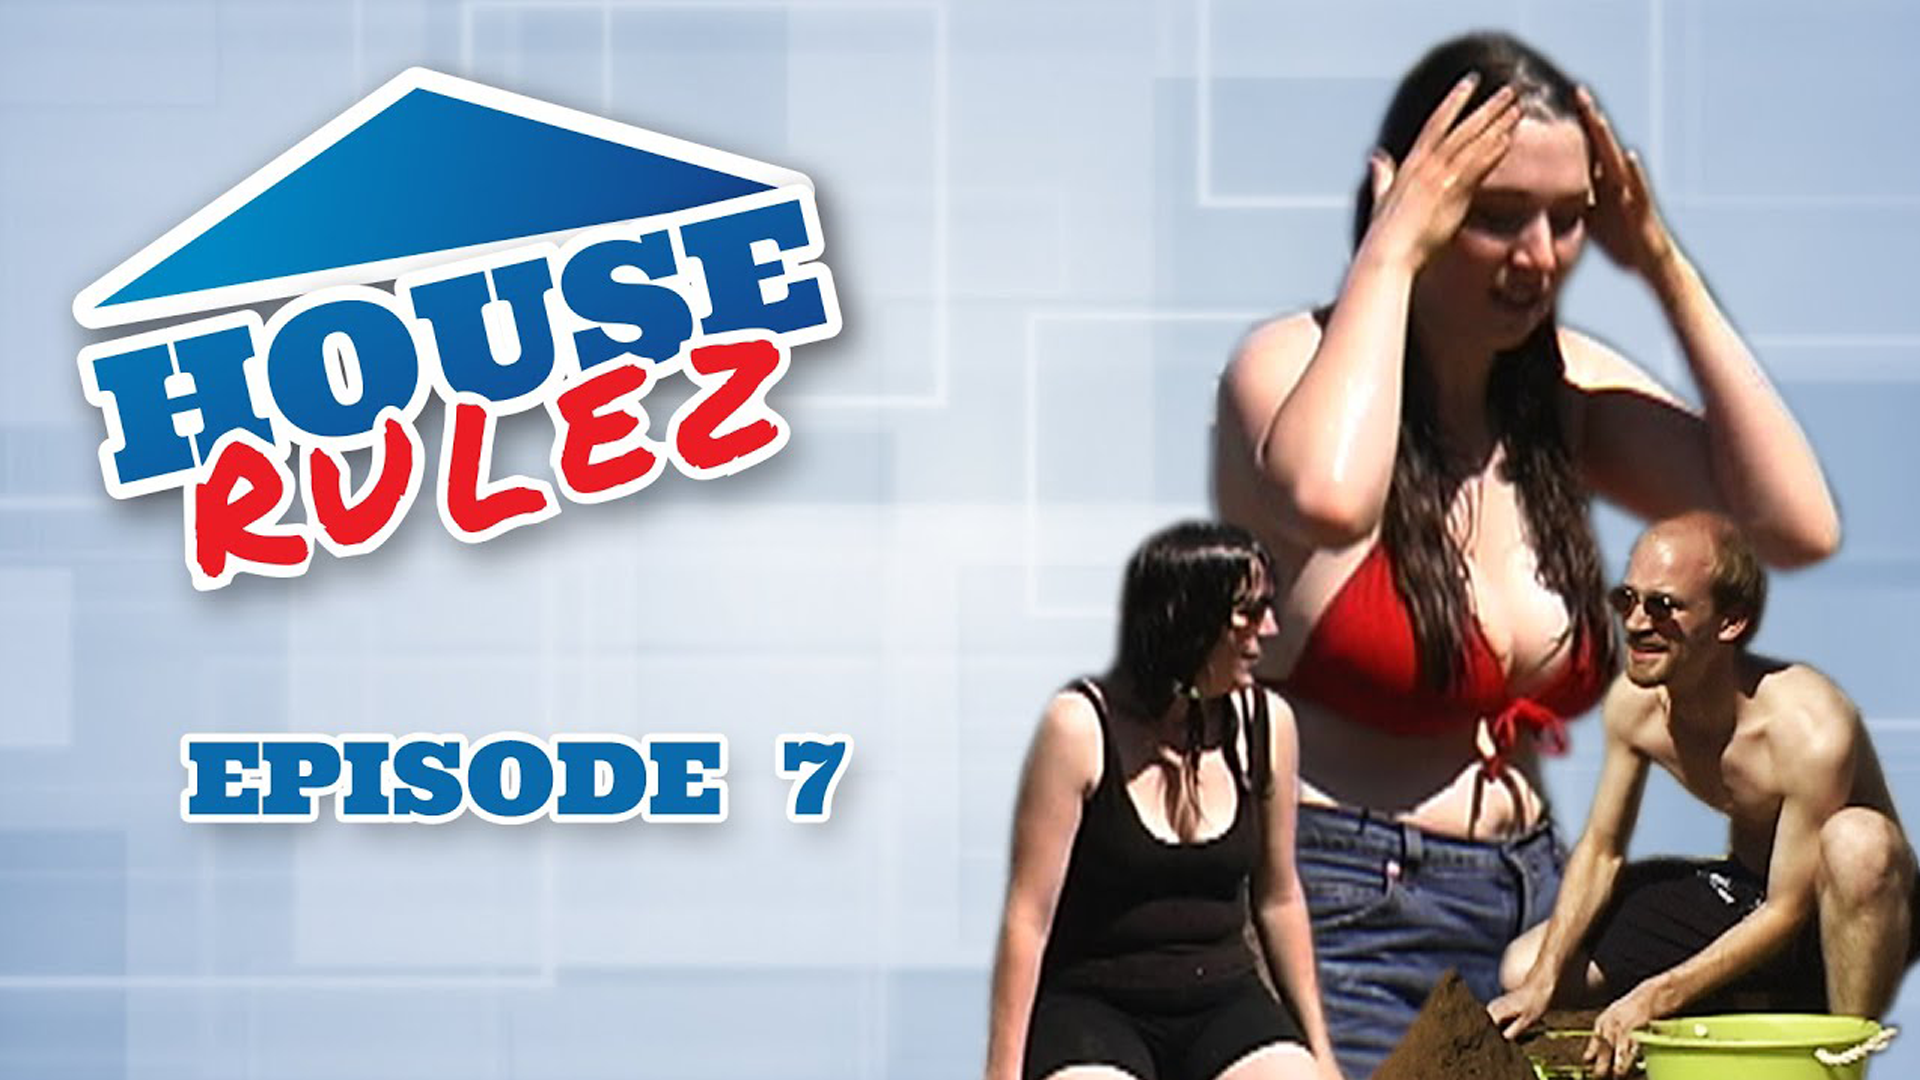 House Rulez Episode 7